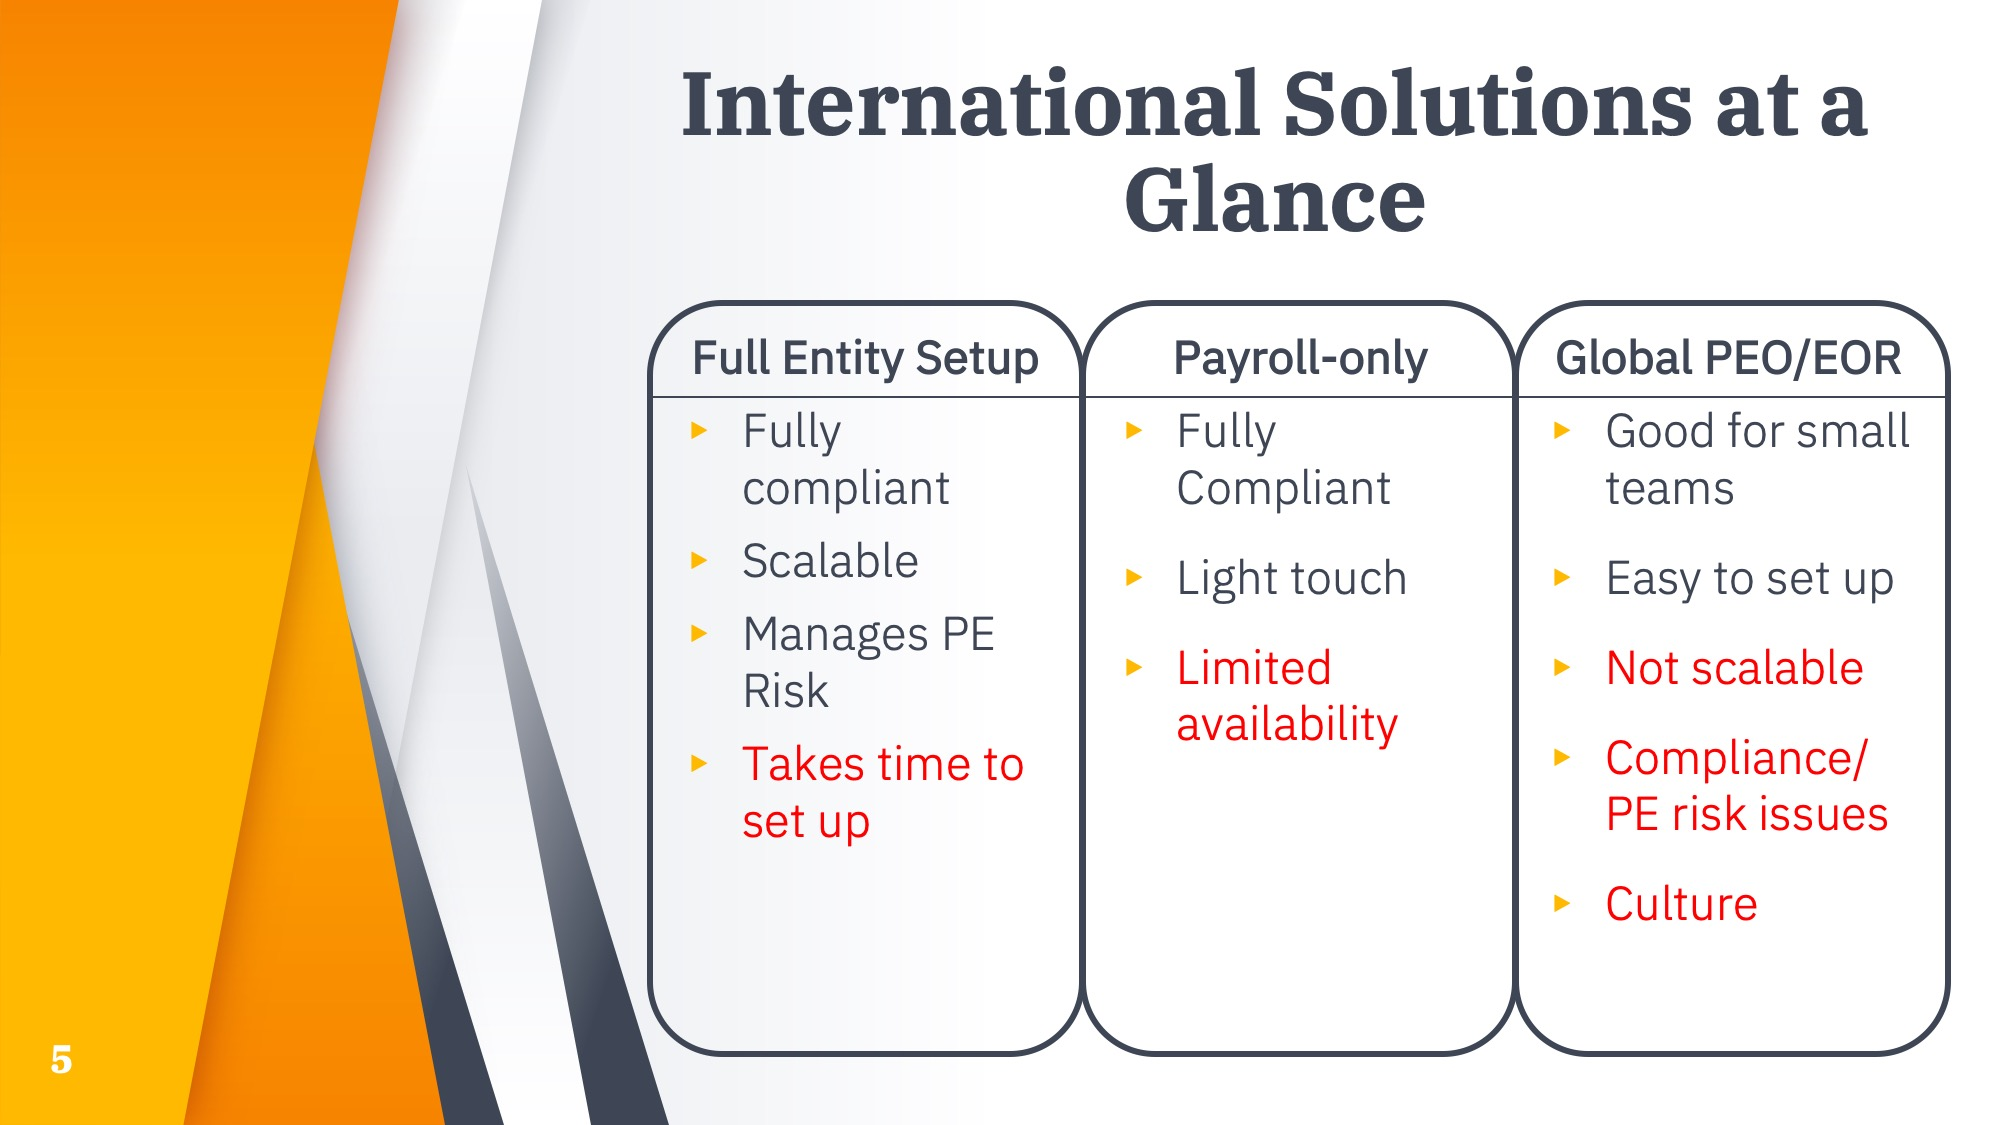 International solutions compared - Full entity, Payroll only, Global PEO/EOR